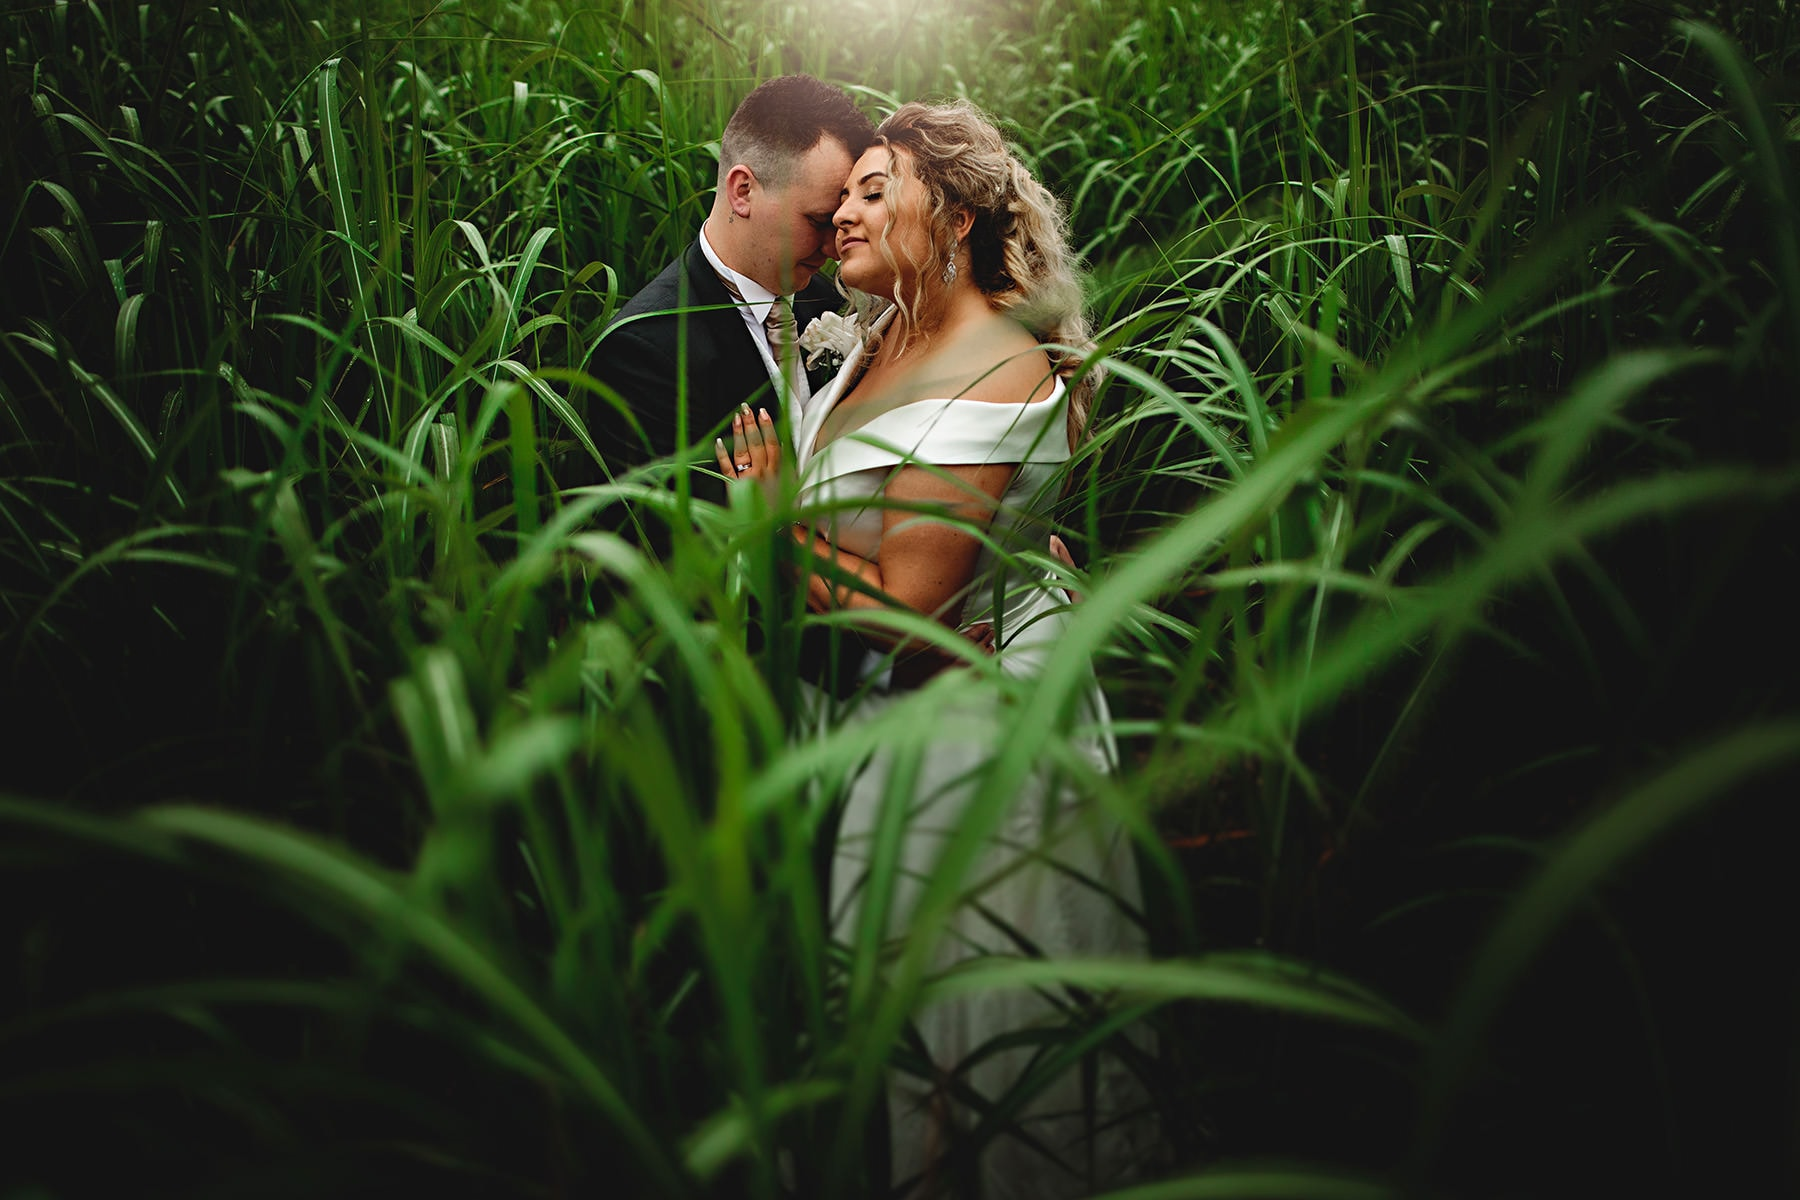 the bride and groom stood together in vivid green grass in a field at Alrewas hayes wedding venue